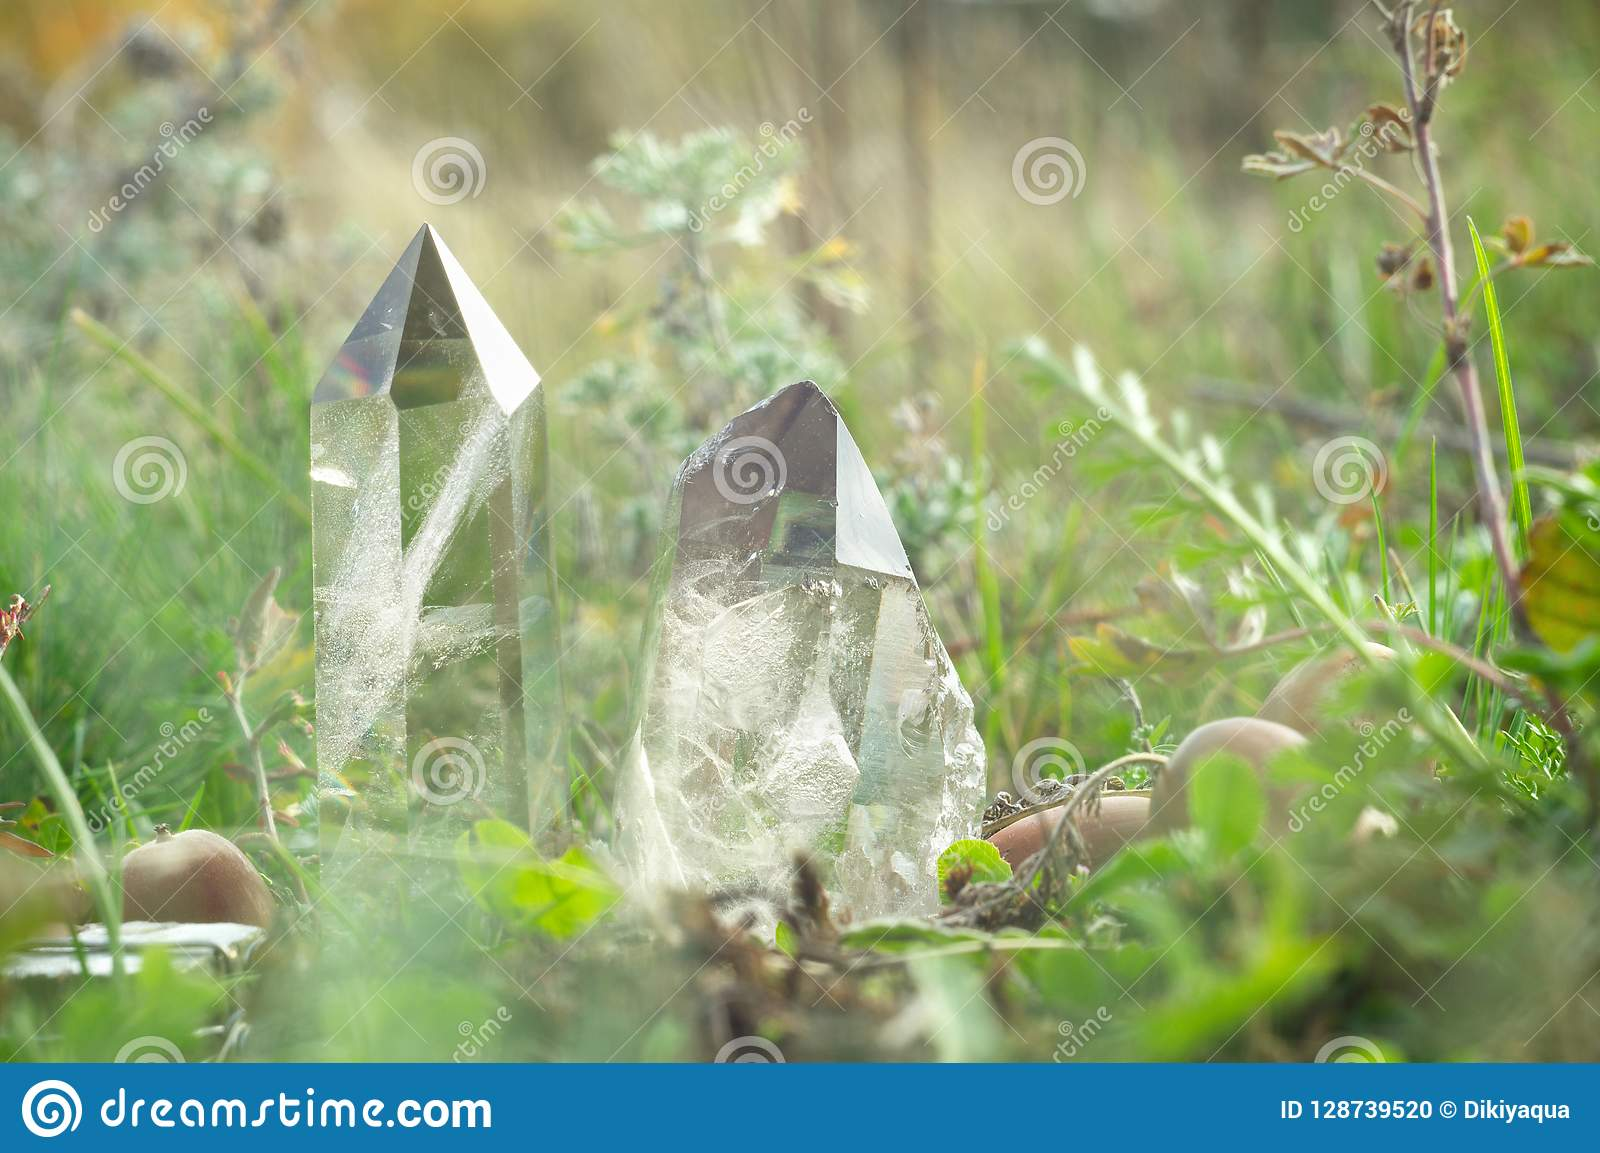 Large clear pure transparent great royal crystals of quartz chalcedony diamond brilliant on nature blurred bokeh autumn background